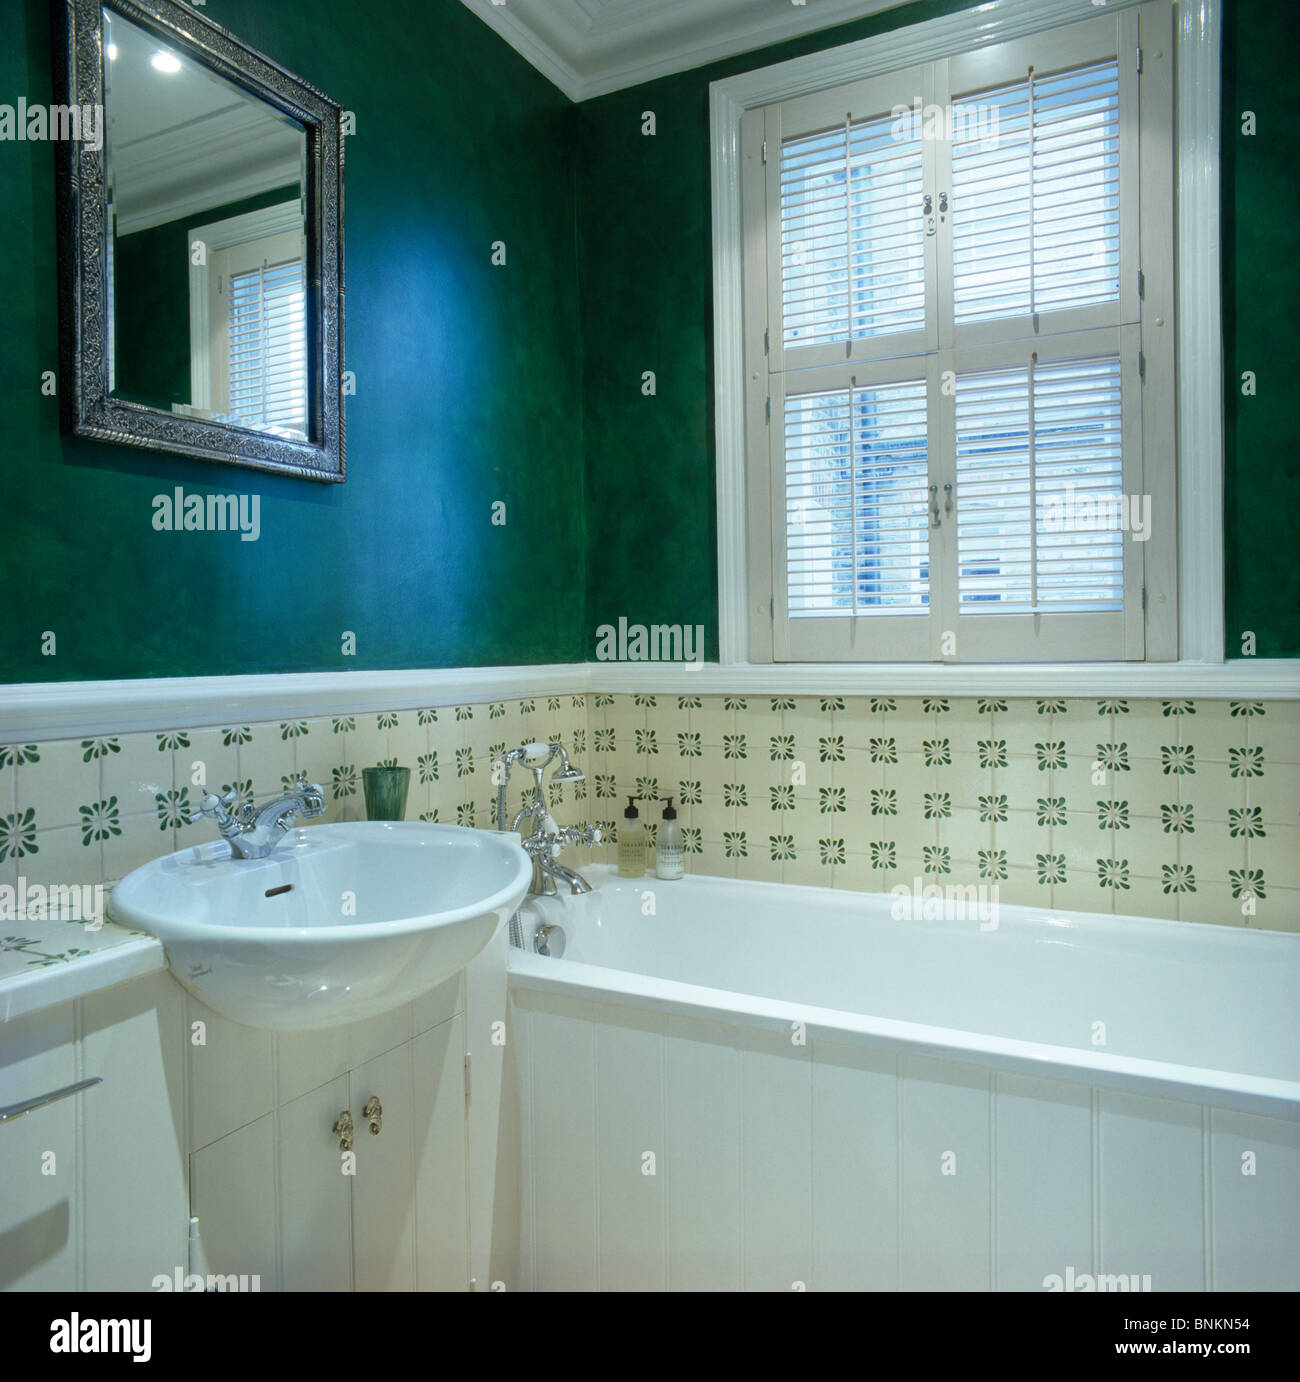 Plantation shutters on window above bath in modern green bathroom ...